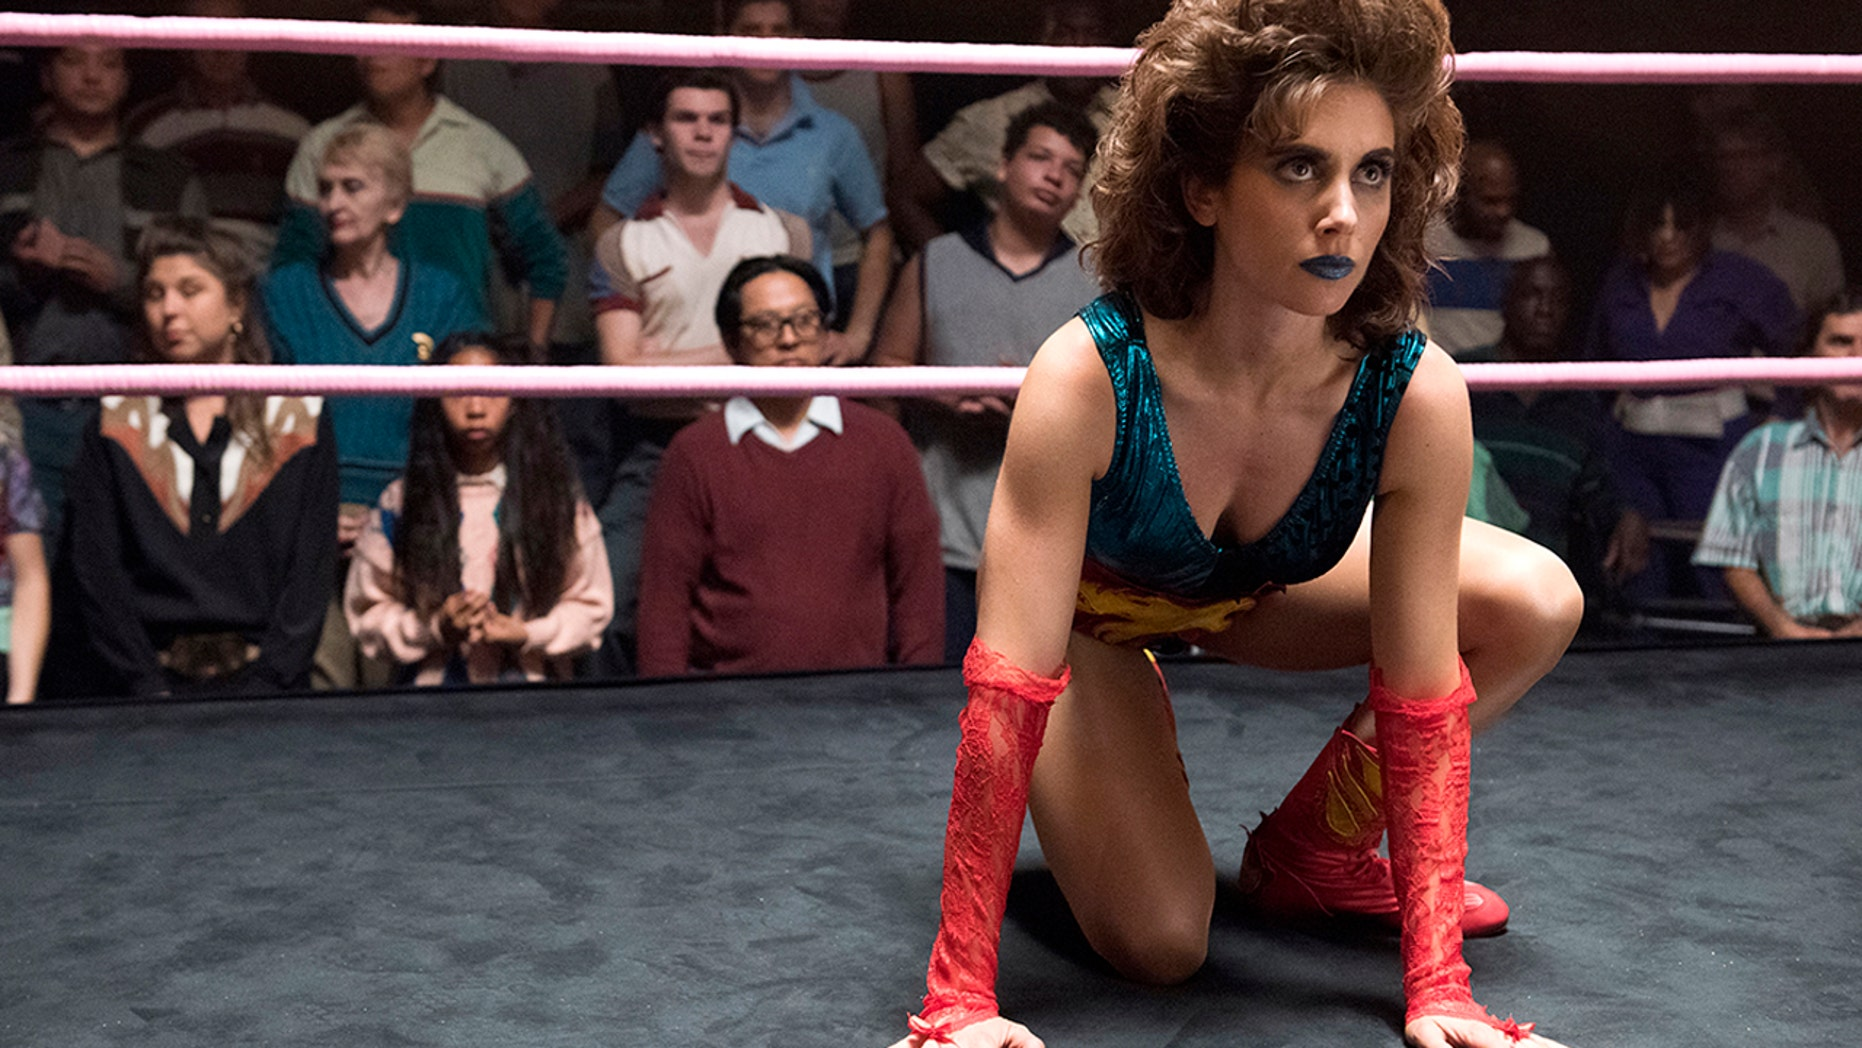 Alison Star Nude why 'glow' star alison brie agreed to nude scenes | fox news